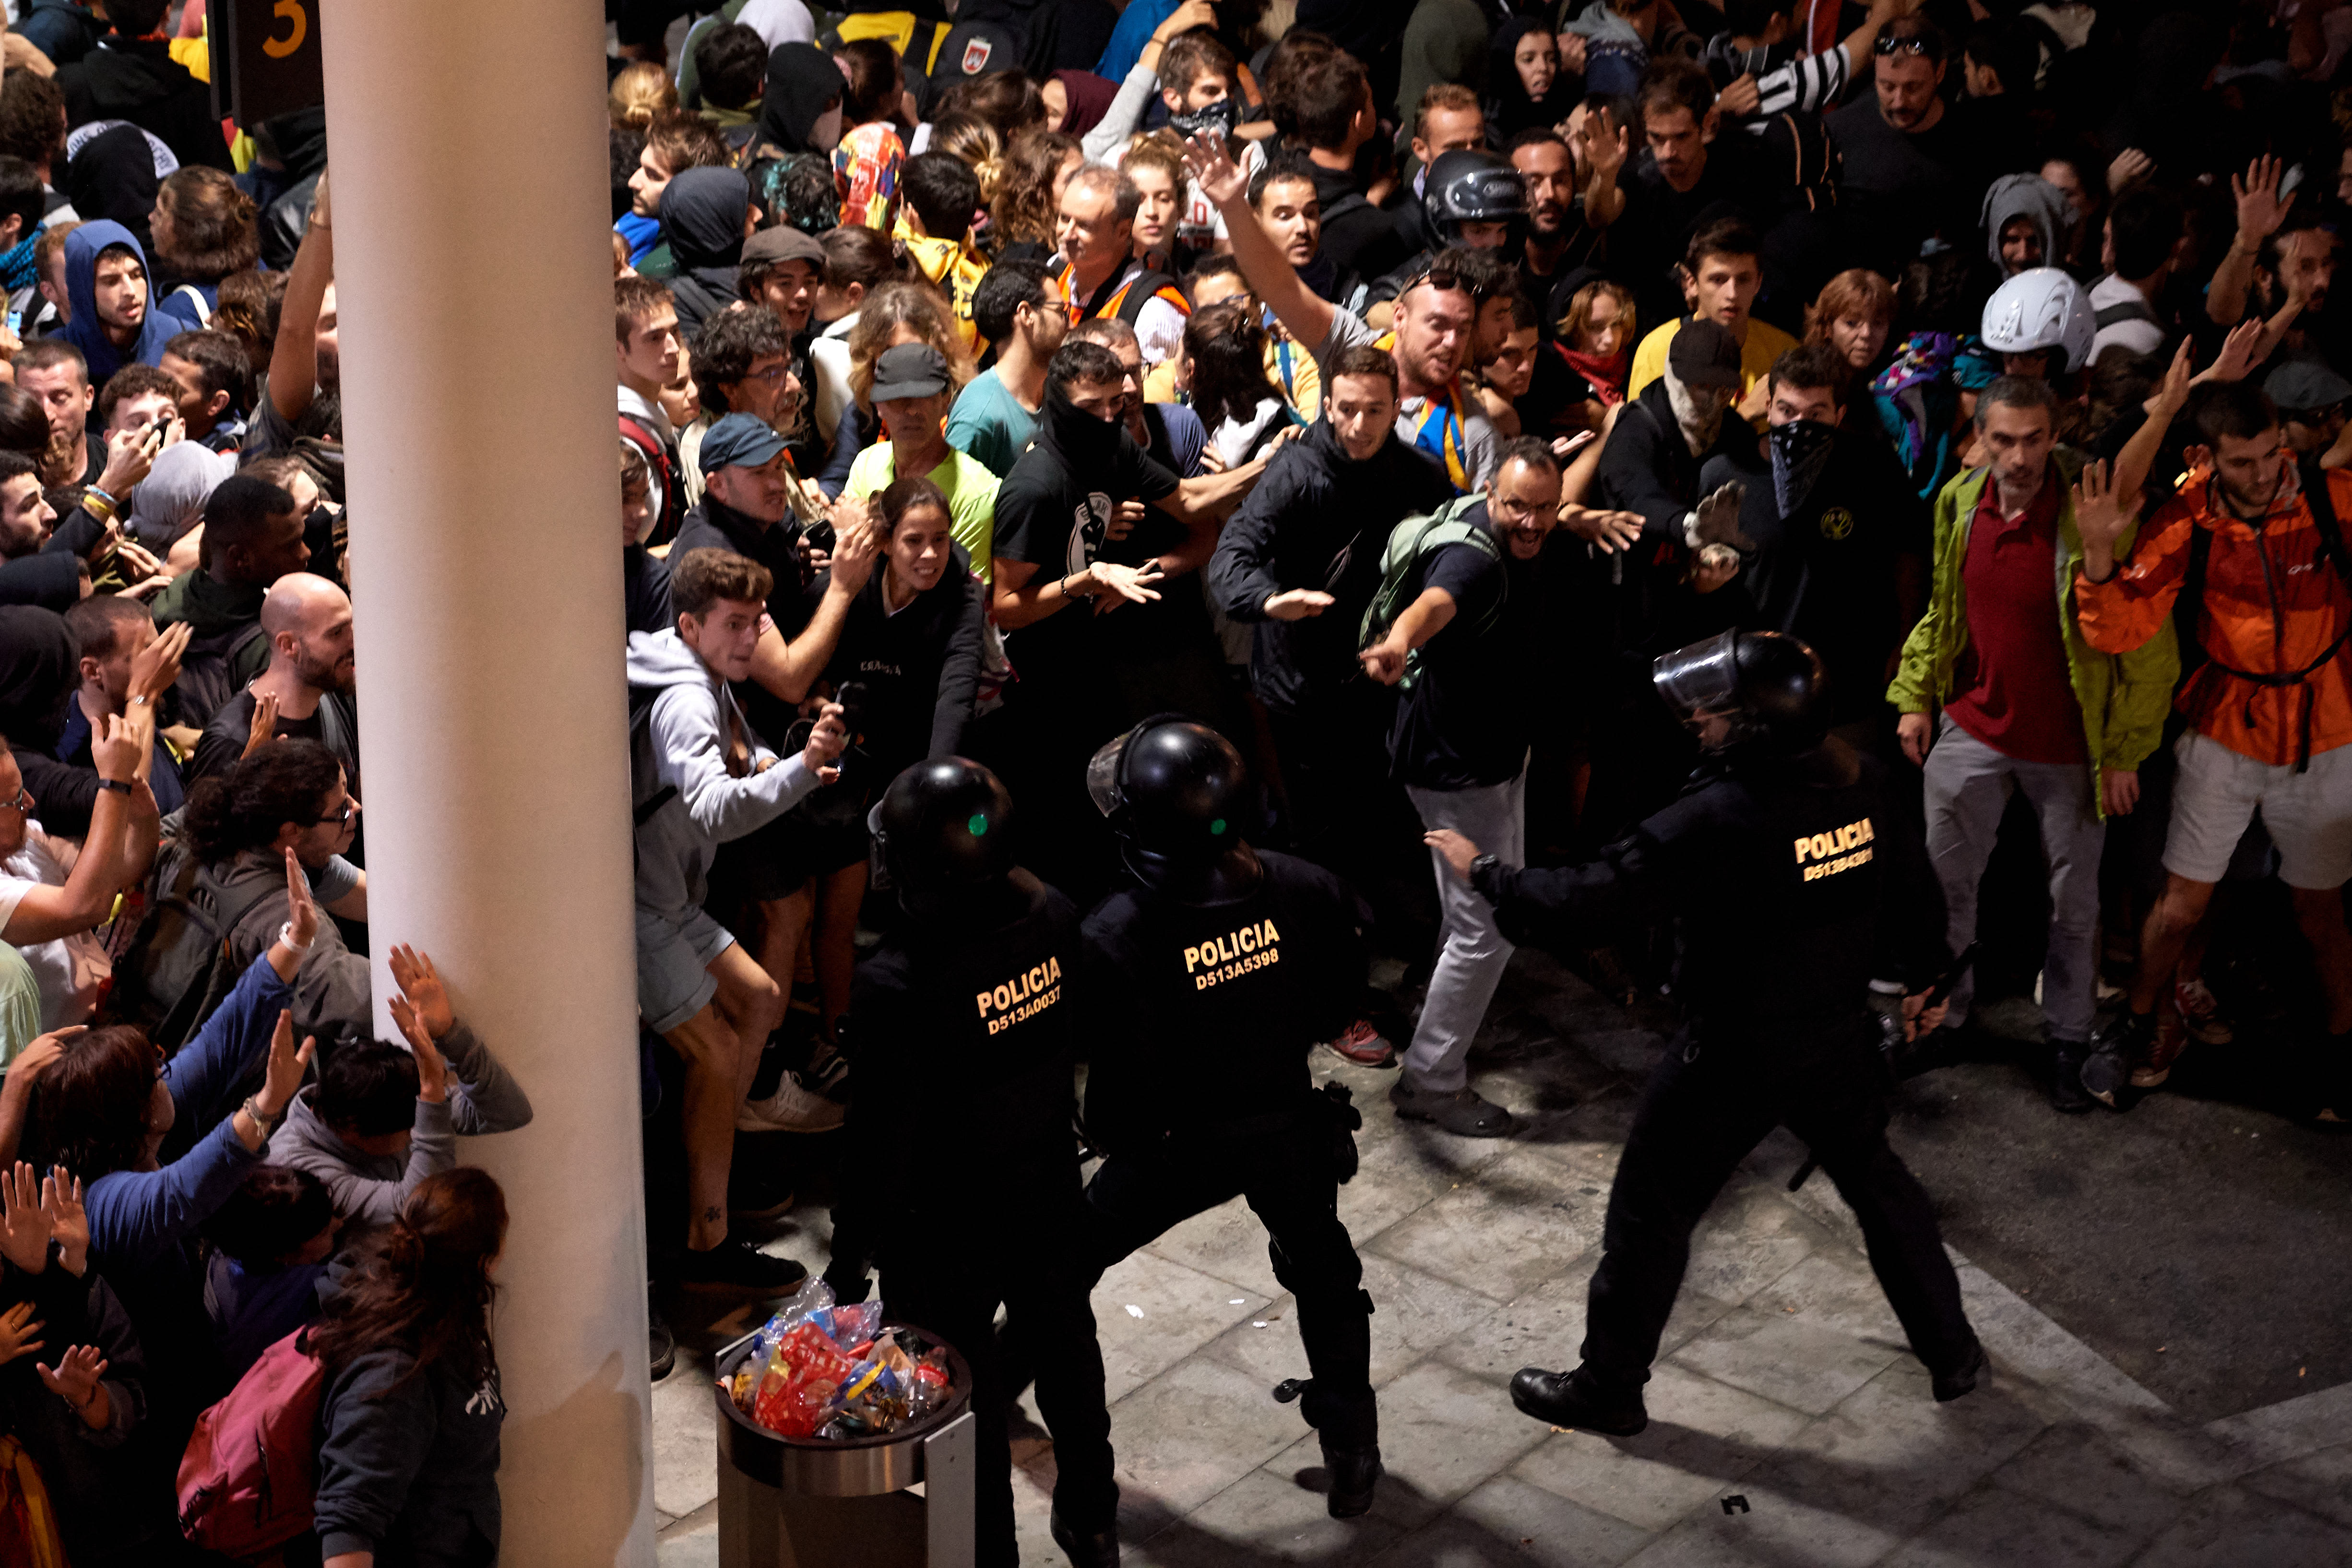 Spain braced for more protests after imprisonment of Catalan leaders provokes outrage